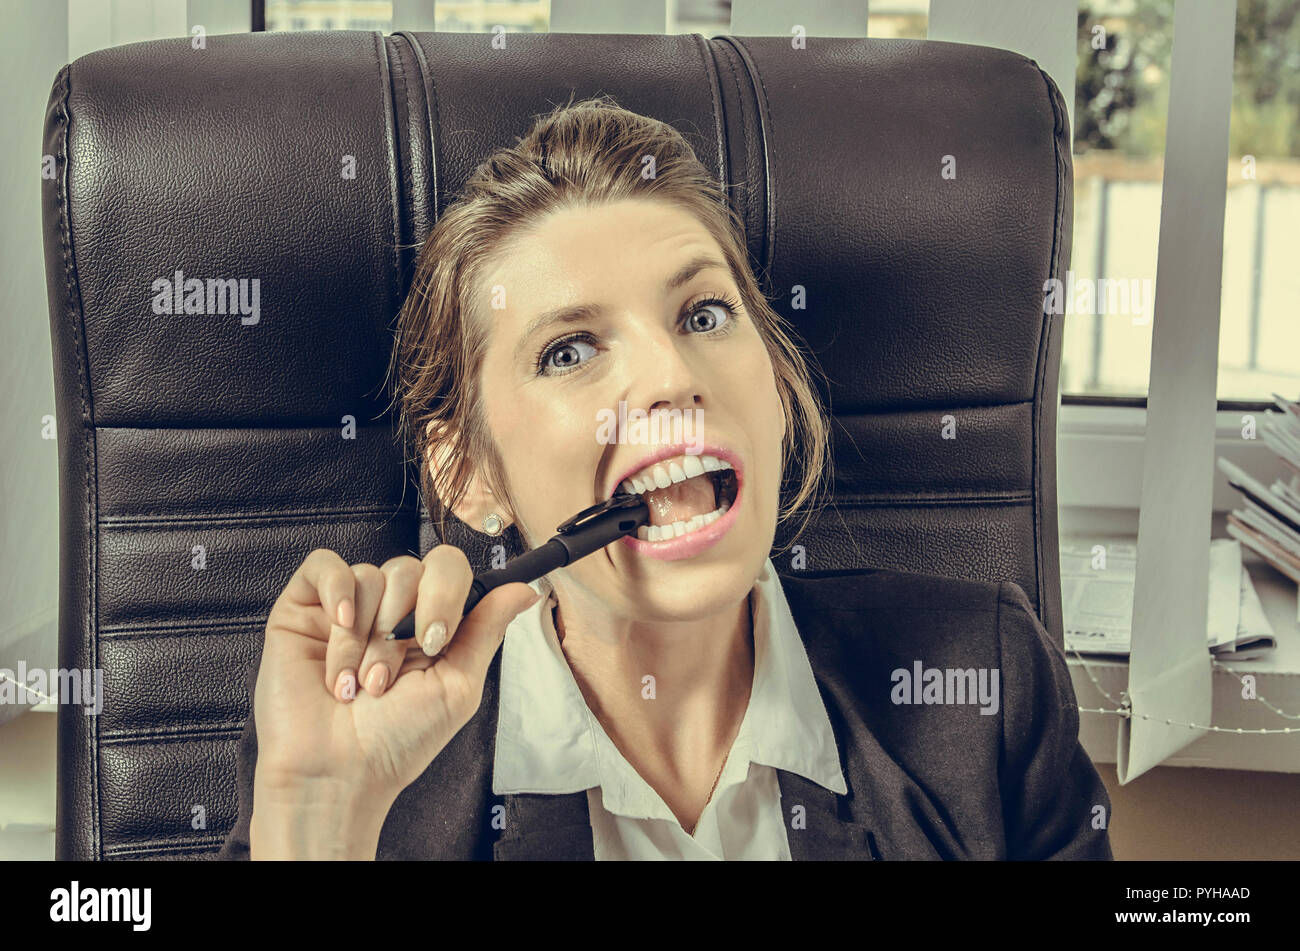 girl in a business suit grimacing and biting a pen. Office life - Stock Image